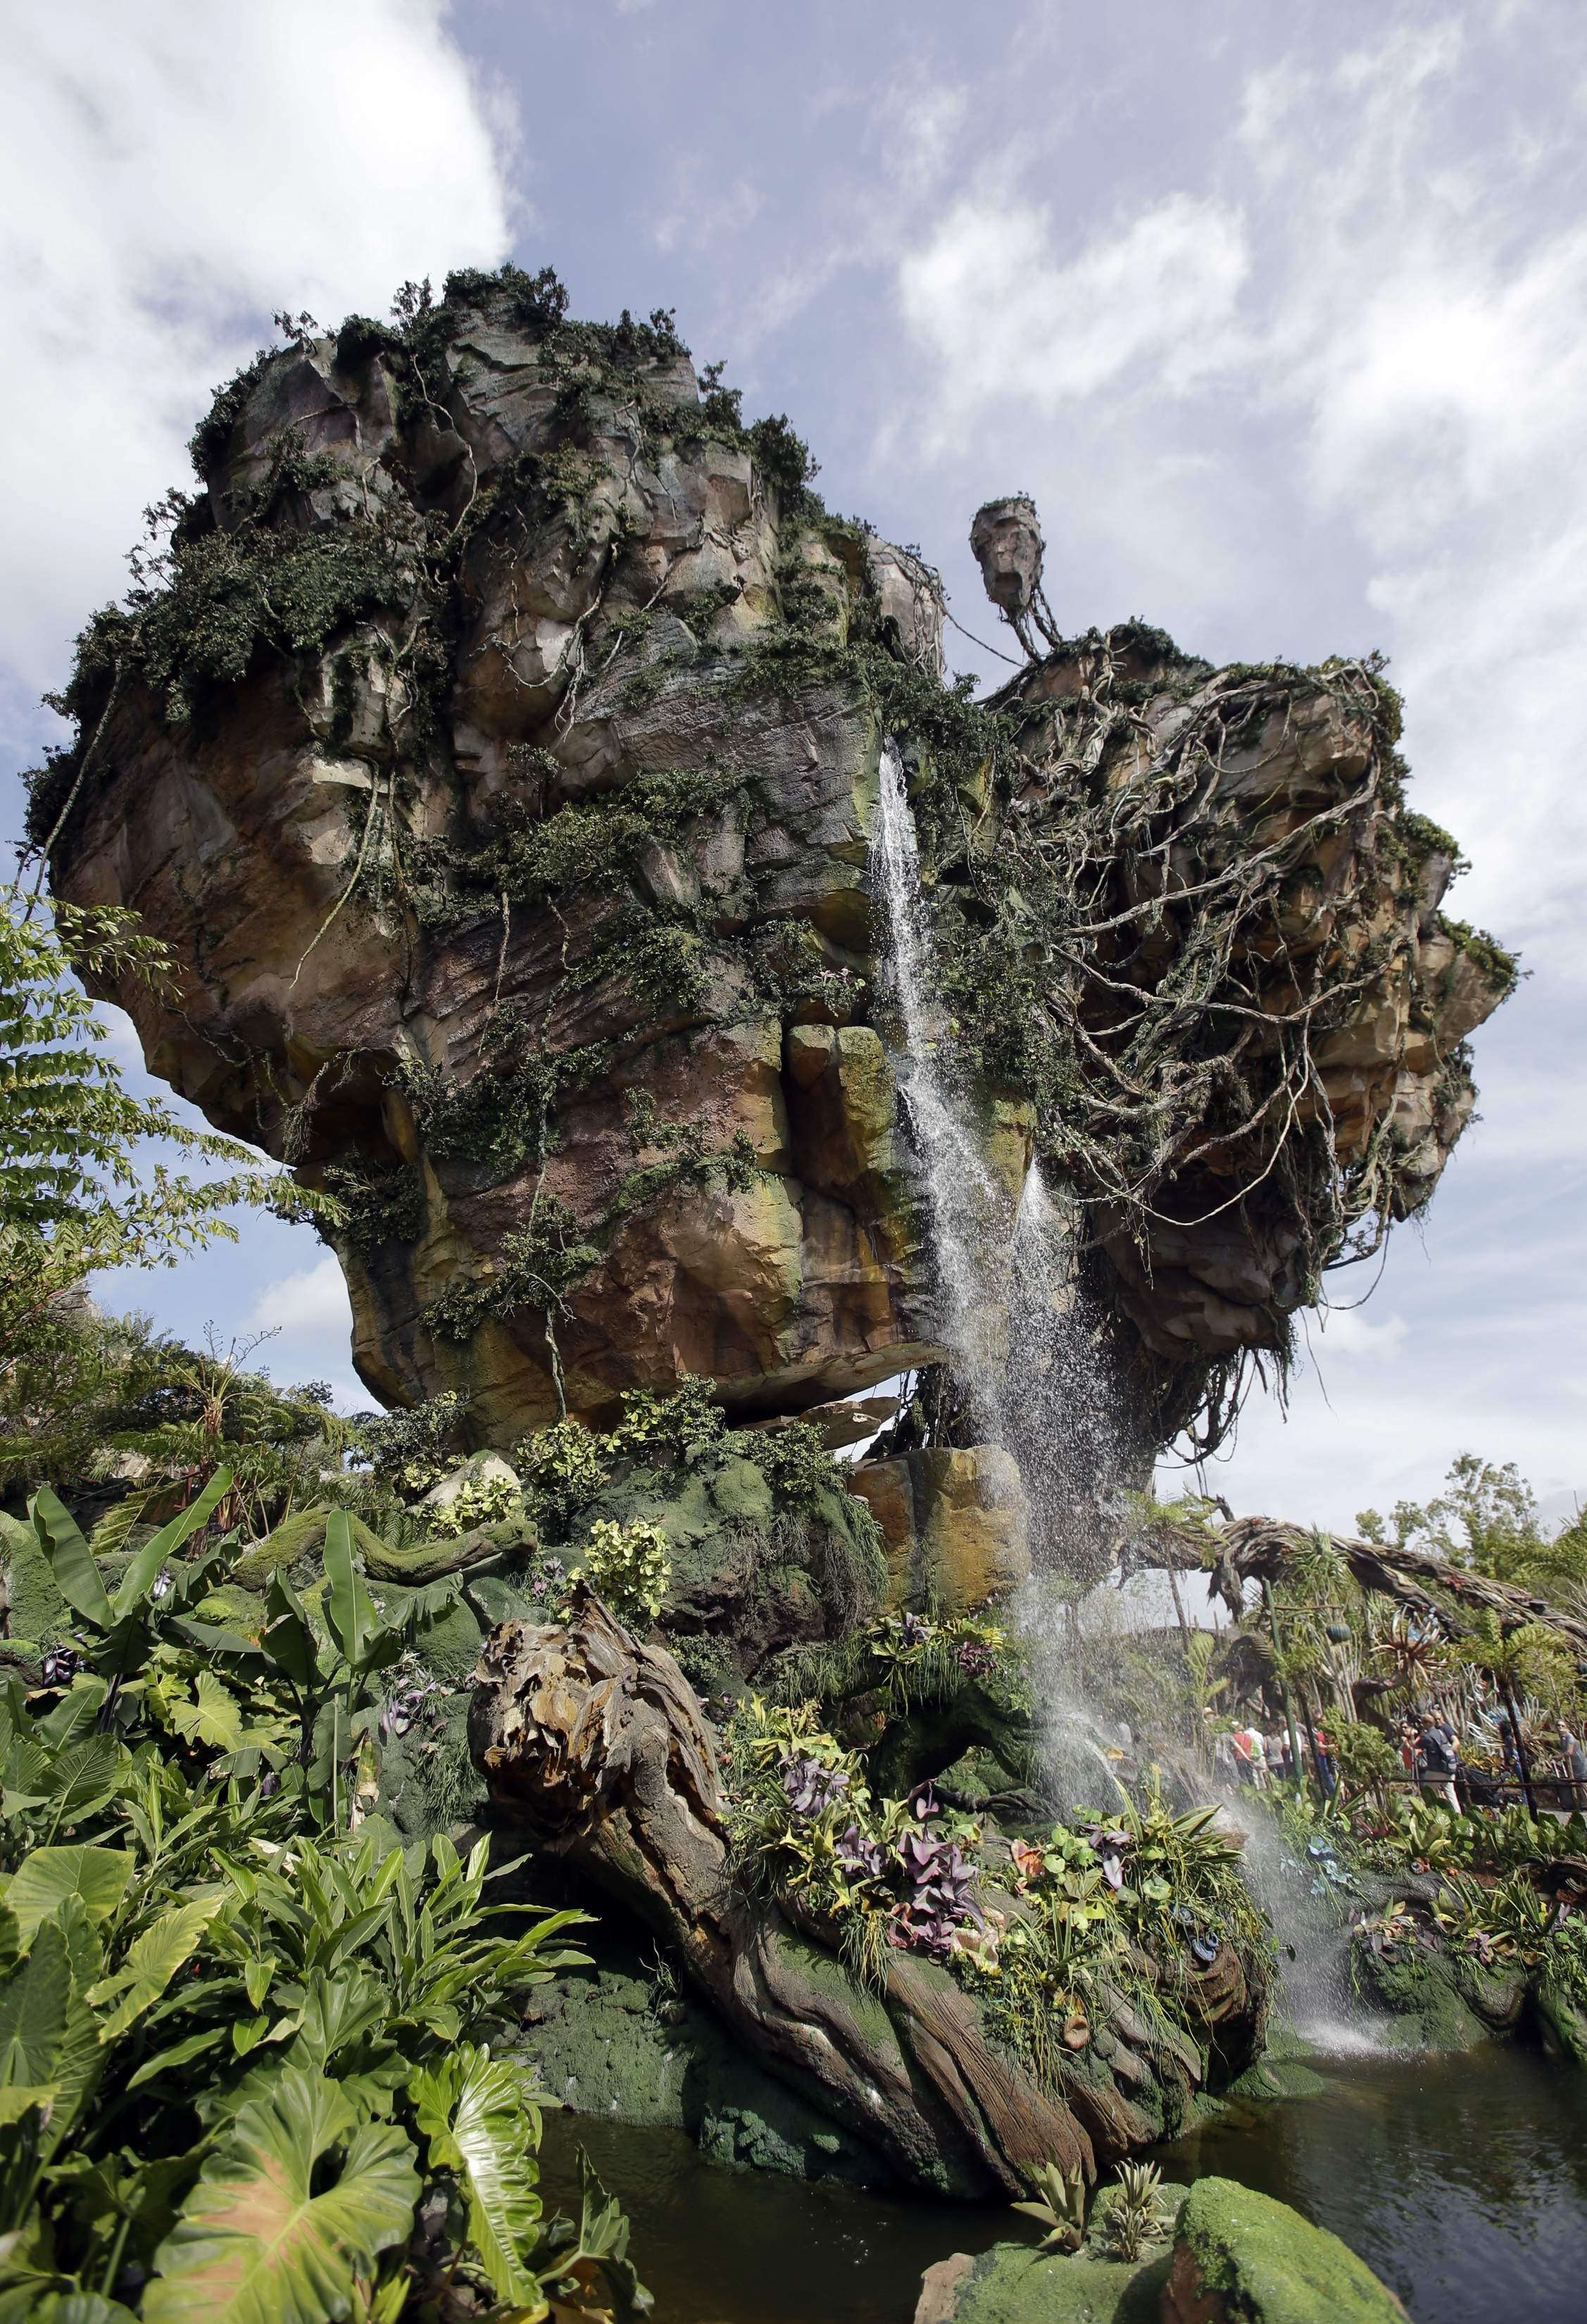 In this Saturday, April 29, 2017, photo, floating mountains are part of the scenery at Pandora-World of Avatar land attraction in Disney's Animal Kingdom theme park at Walt Disney World in Lake Buena Vista, Fla. The 12-acre land, inspired by the 'Avatar' movie, opens in Florida at the end of May at Walt Disney World's Animal Kingdom. It cost a half-billion dollars. THE ASSOCIATED PRESS